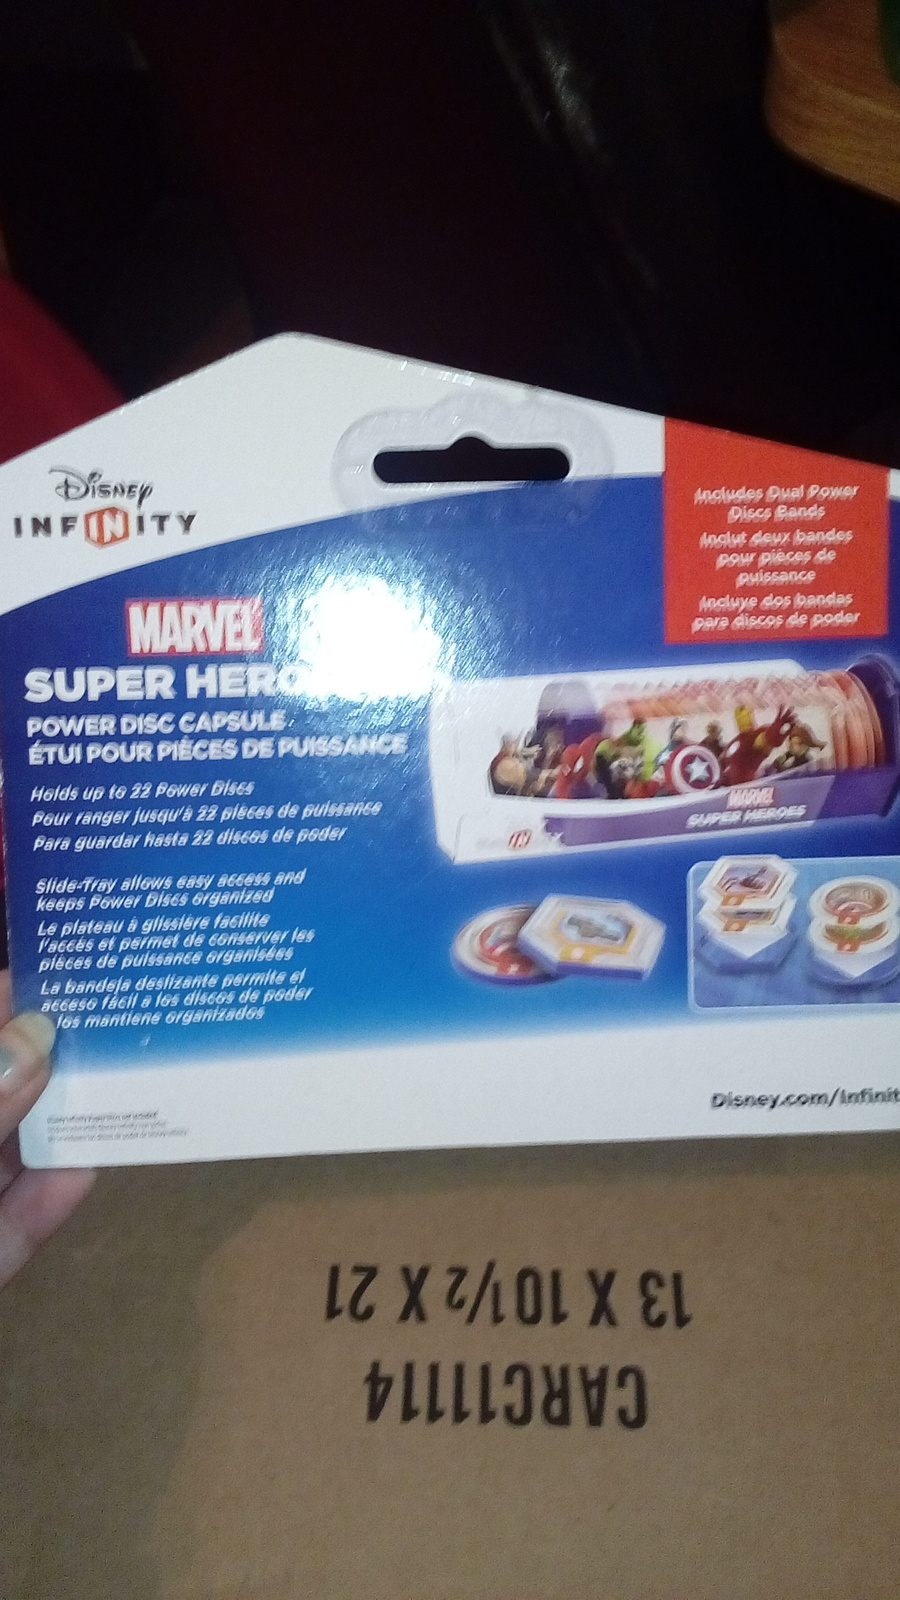 Disney infinity uper Heroes MARVEL power disc capsule RAS1193